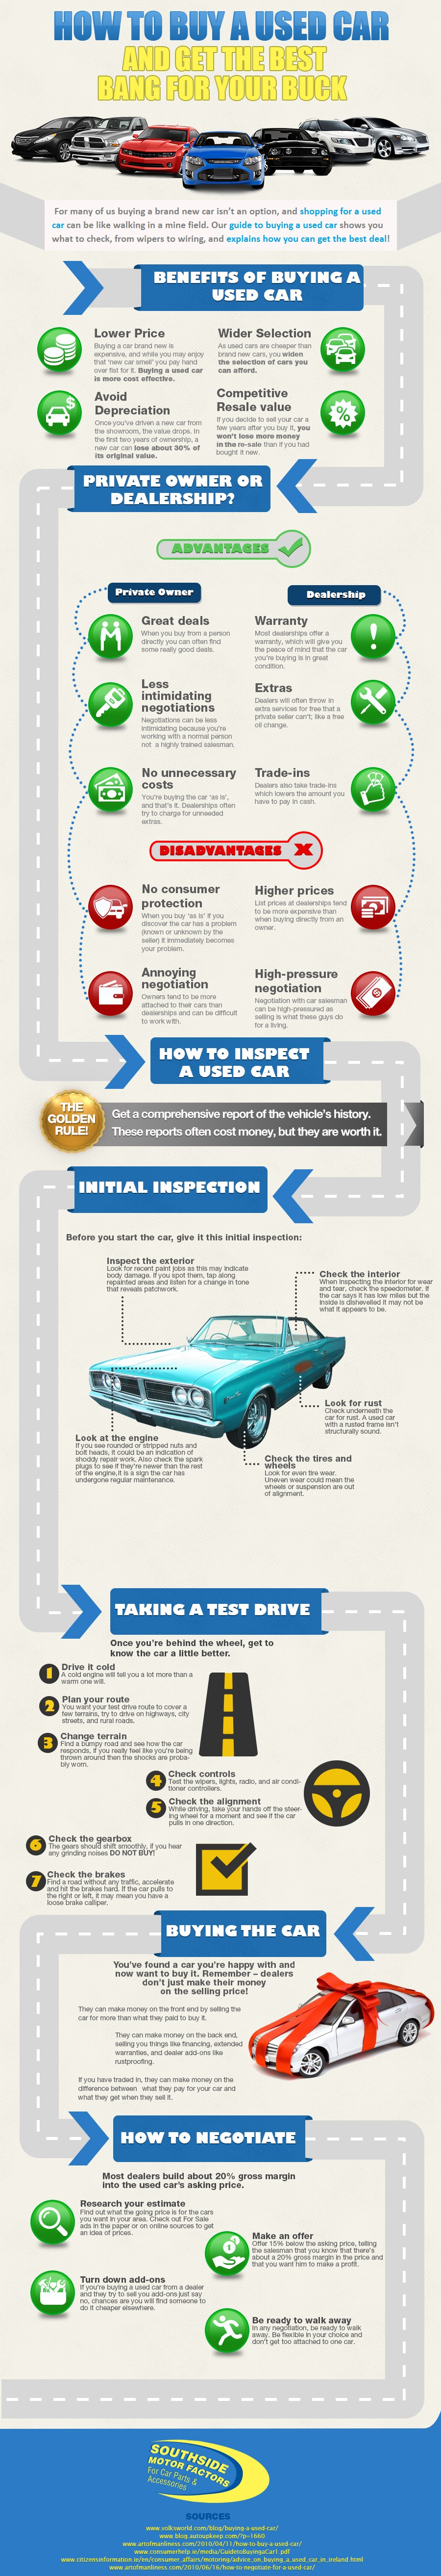 How To Buy a Used Car & Get the Best Bang For Your Buck